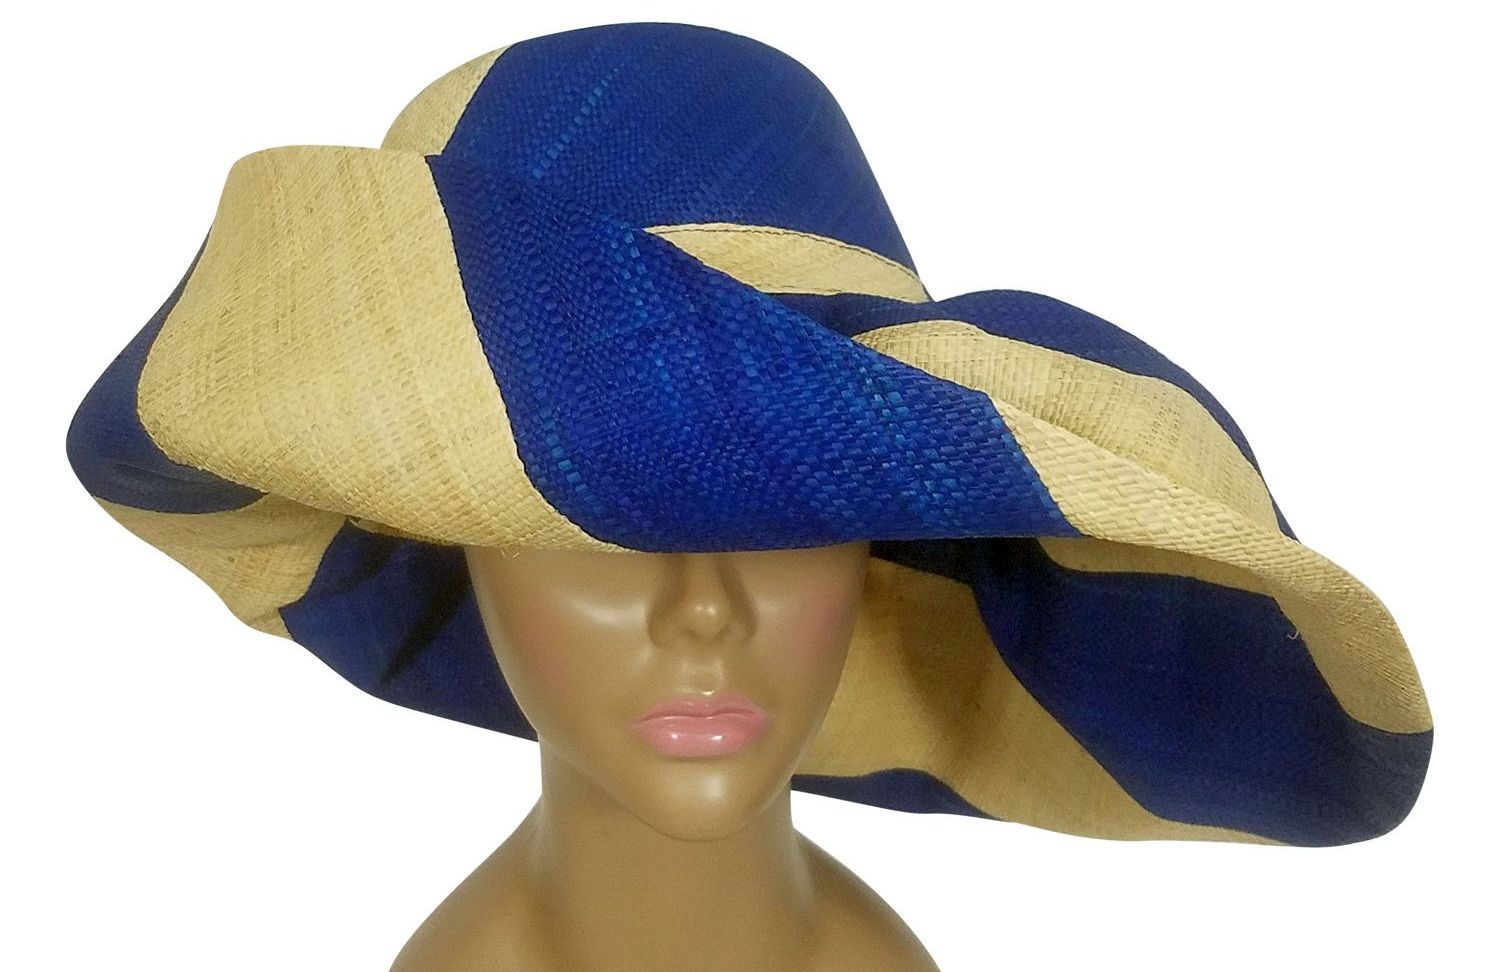 Awiti: Authentic African Handwoven Blue and Natural Swirl Madagascar Big Brim Raffia Sun Hat